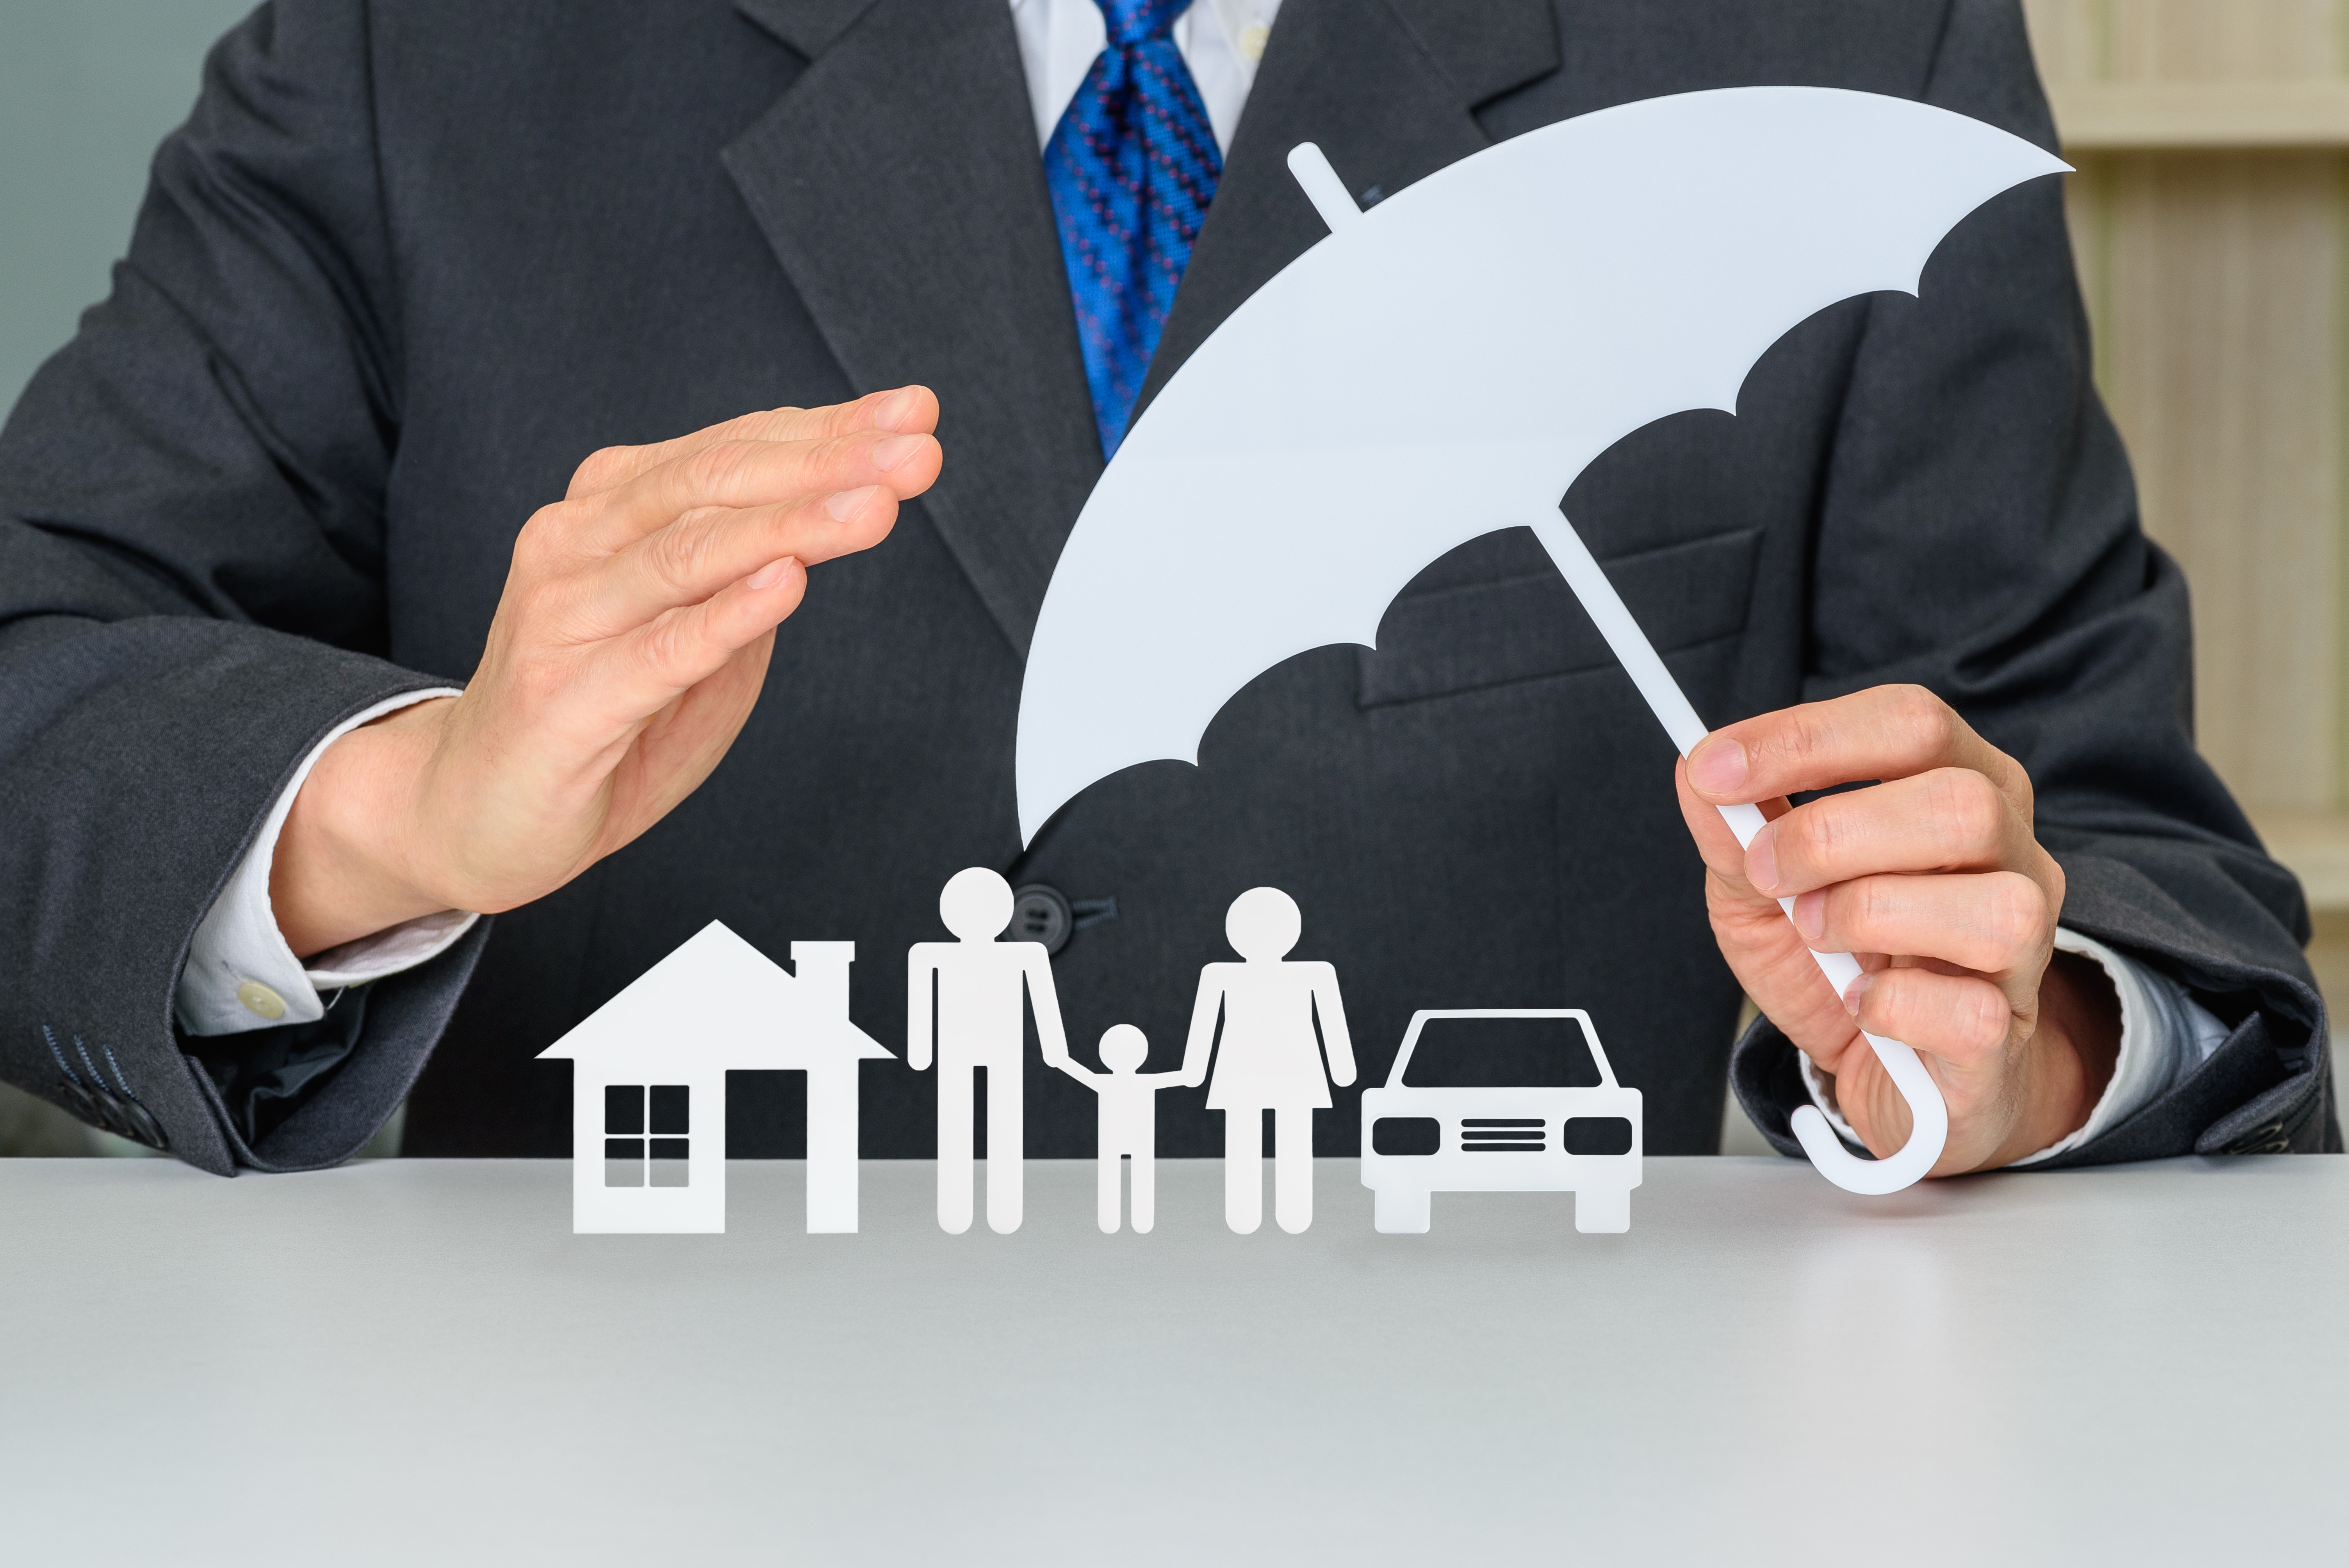 asset protection, man protecting assets with paper cutouts